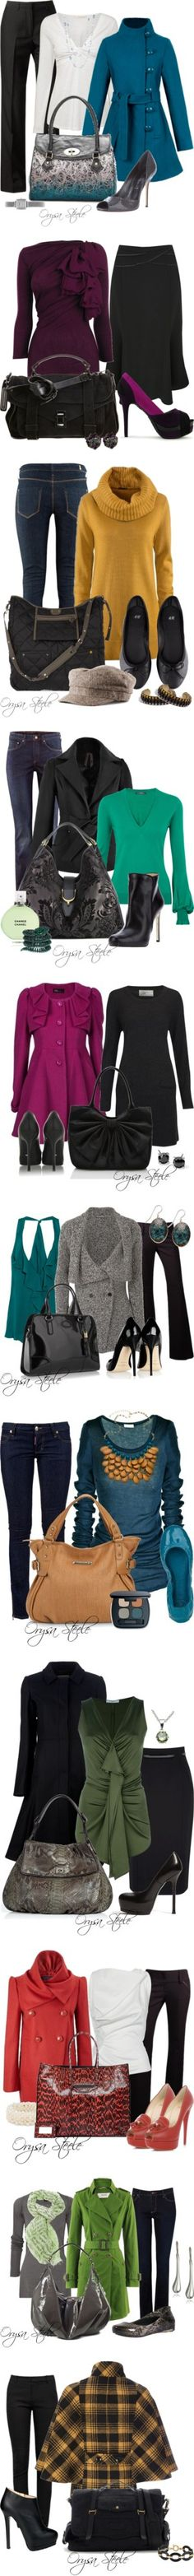 """""""Fall Jewel Tones"""" by orysa on Polyvore"""